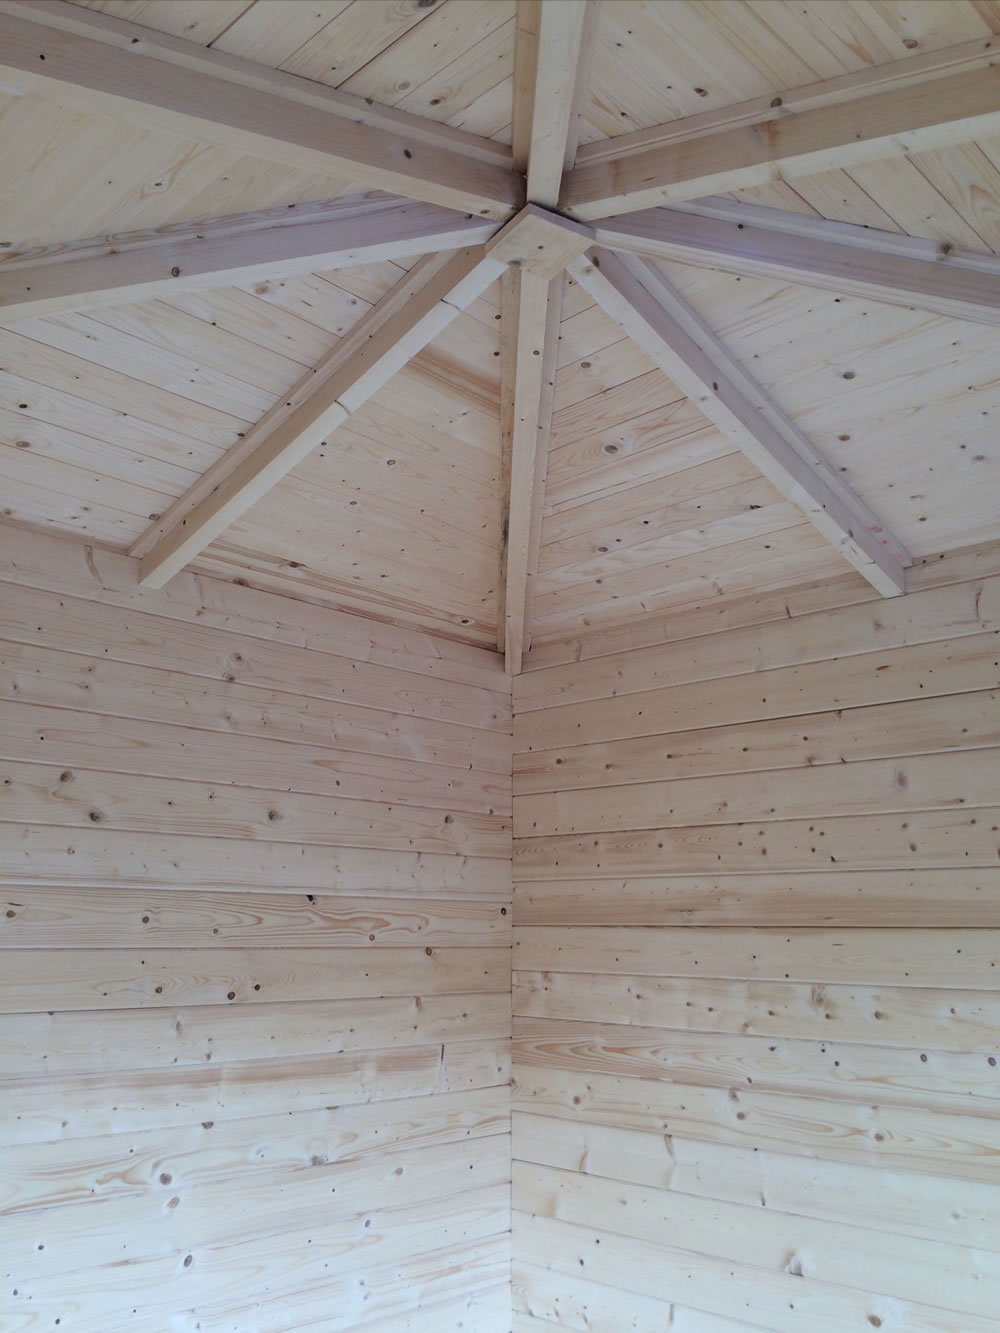 Jos corner log cabin inside - fitter enhancement in the roof